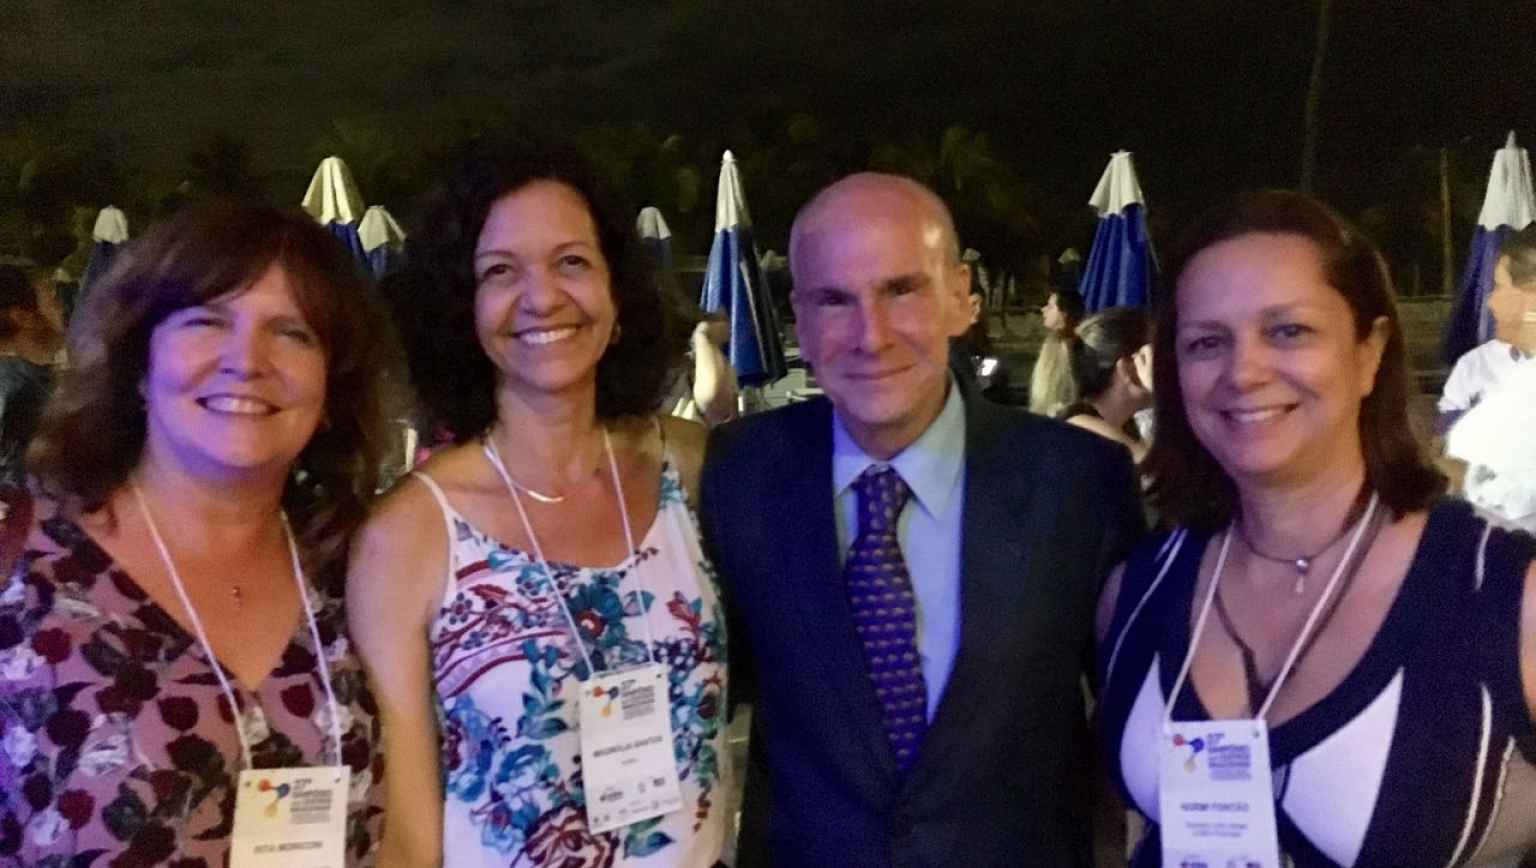 Meeting the US Embassador in Brazil, Mr Michael Mckinley at the BNC Symposium